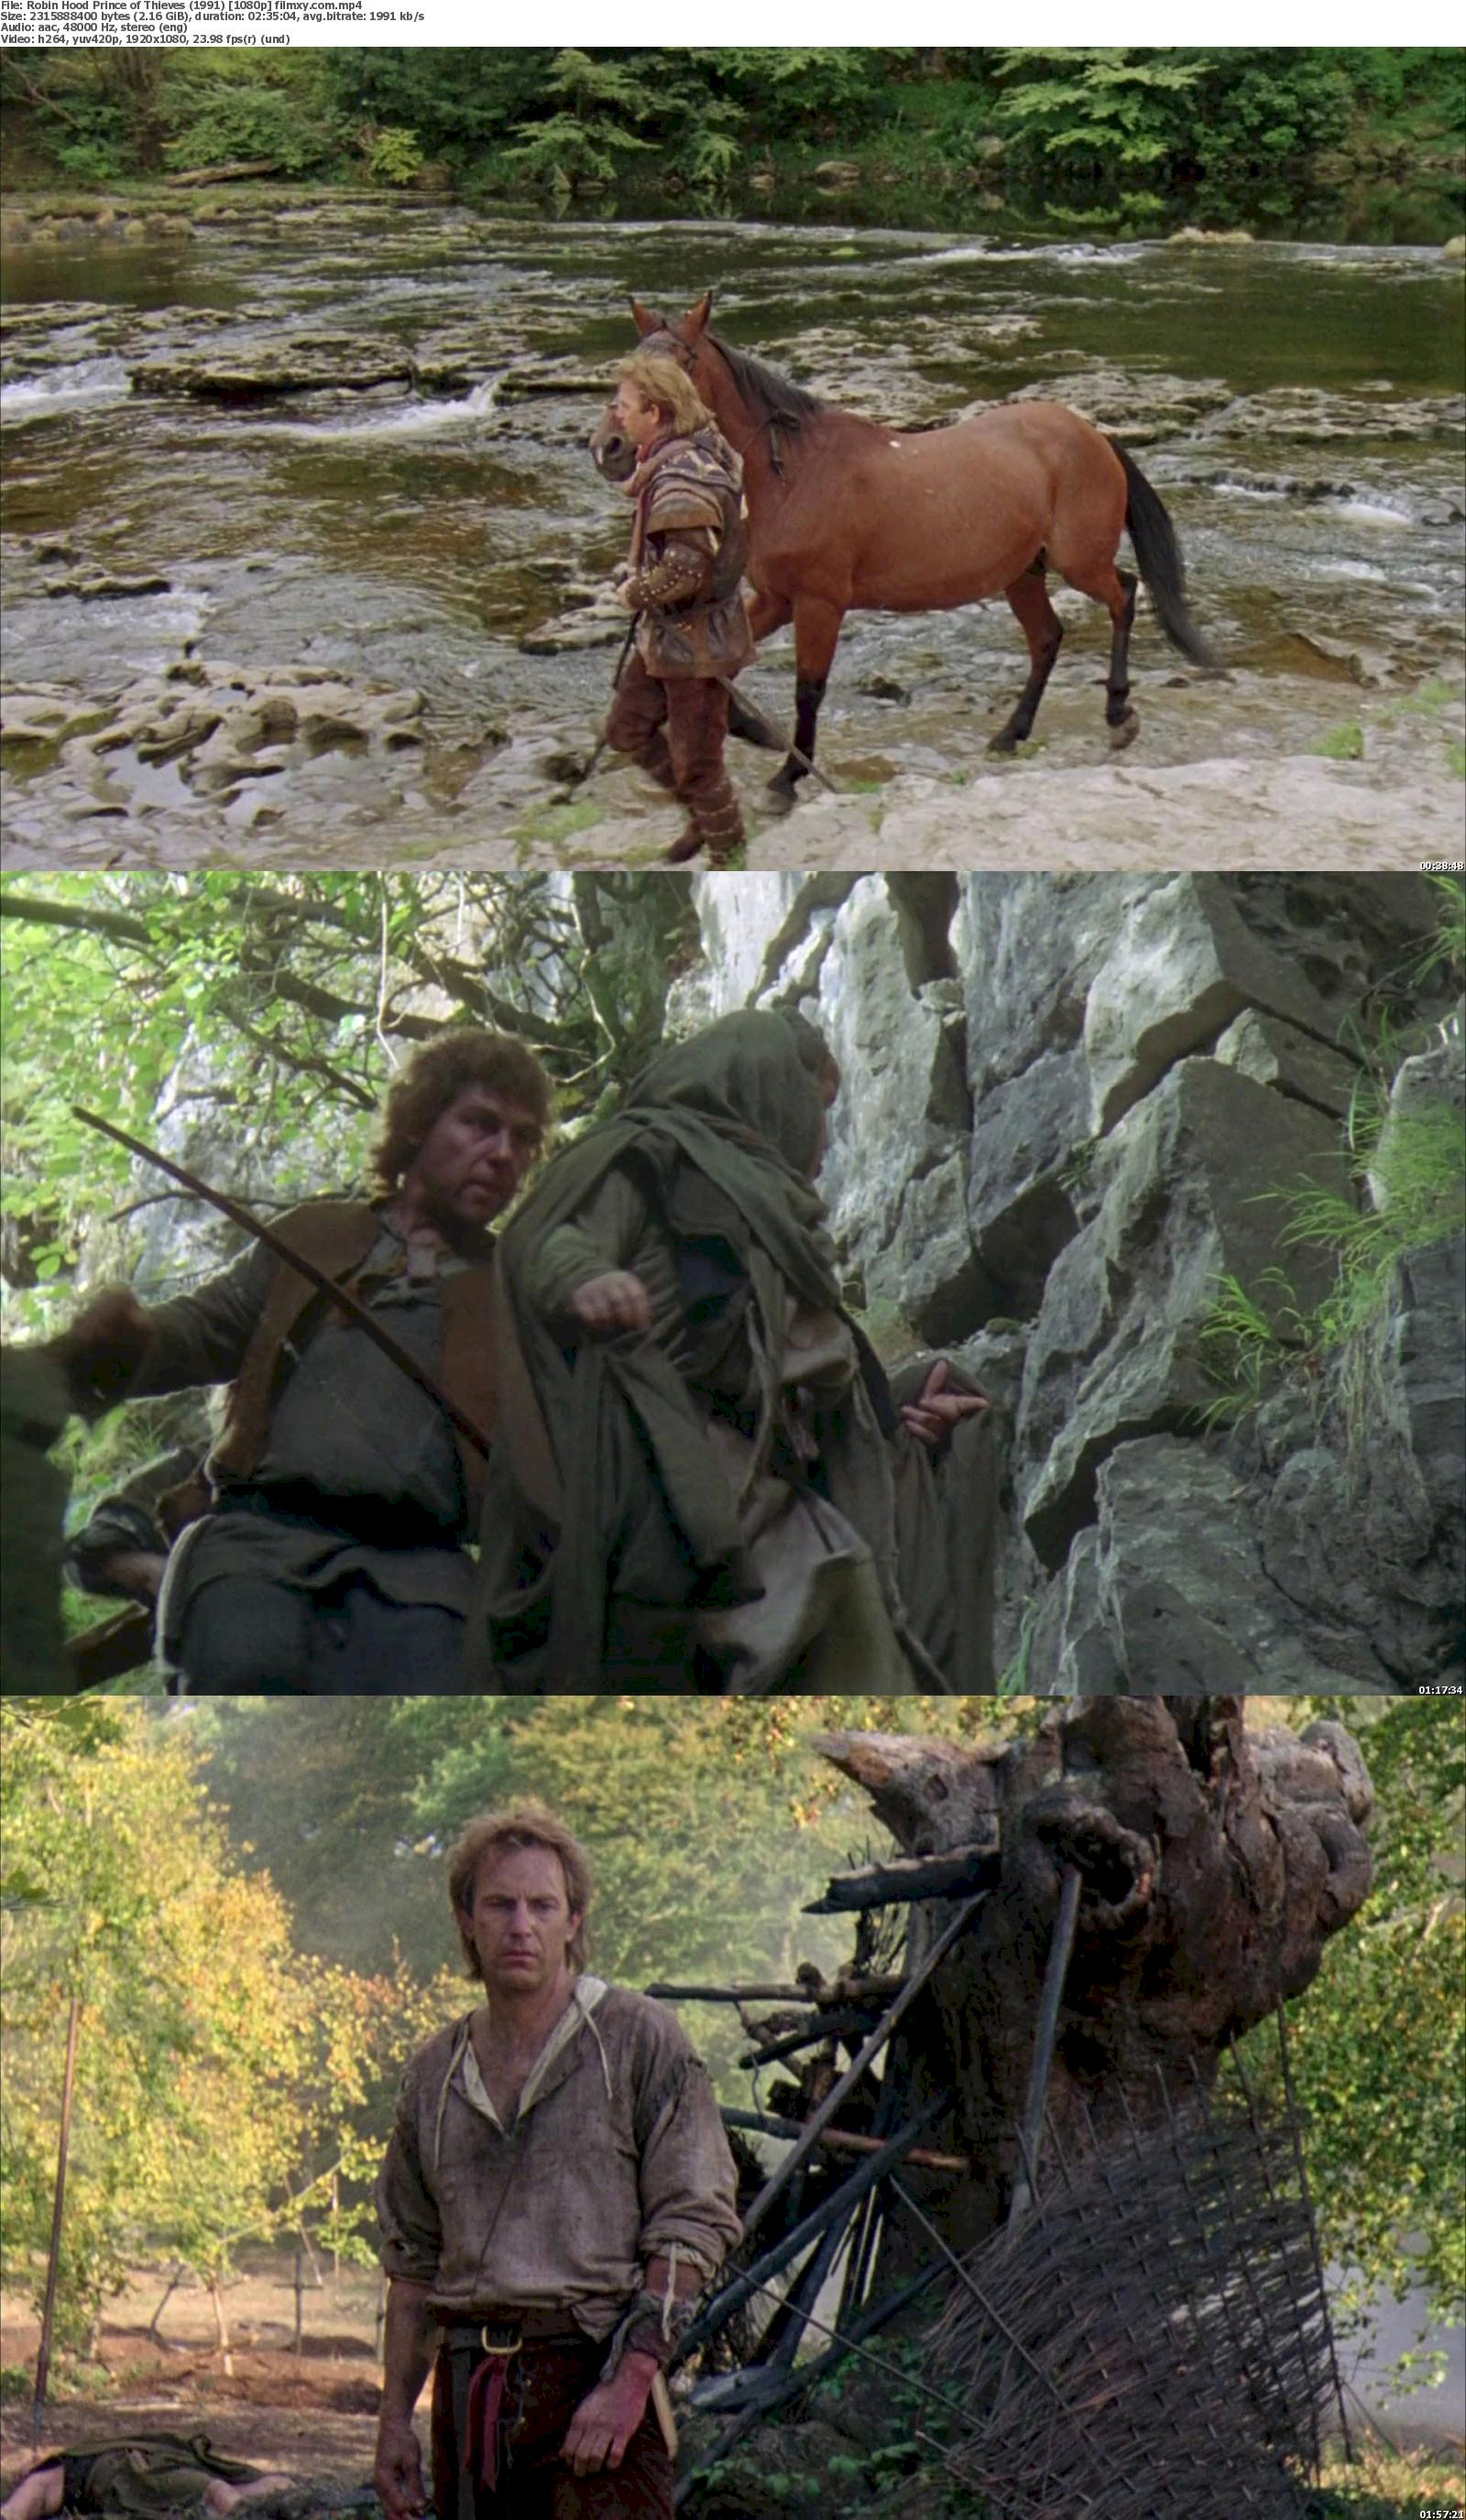 Robin Hood Prince of Thieves (1991) 1080p Bluray Free Download 1080p Screenshot